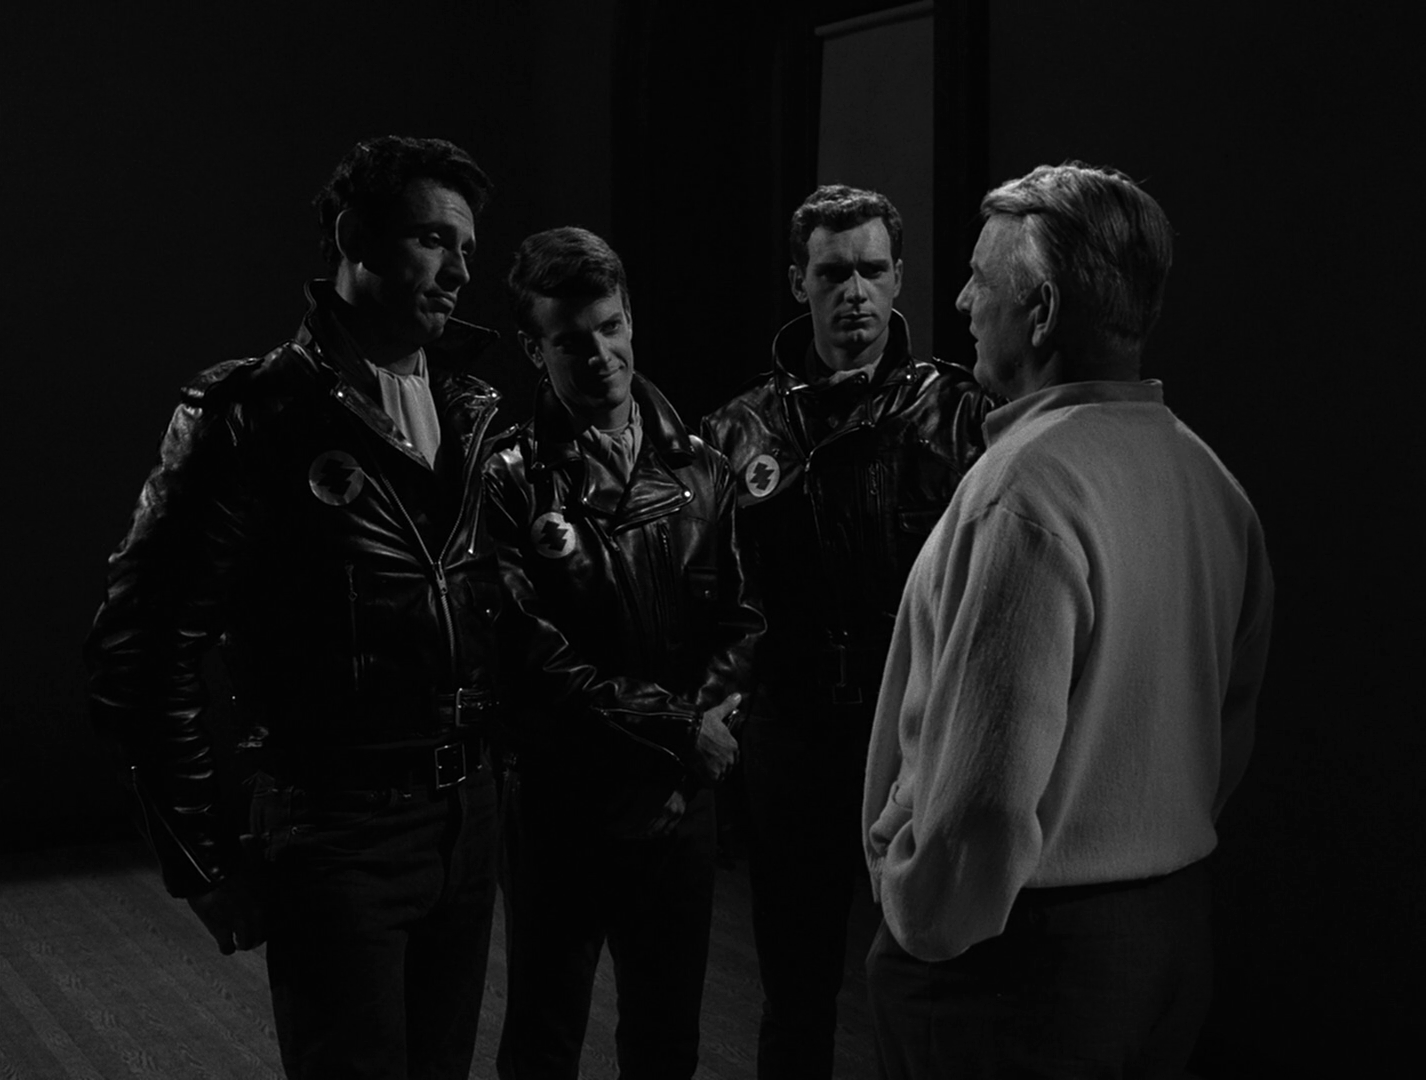 Black leather jacket twilight zone